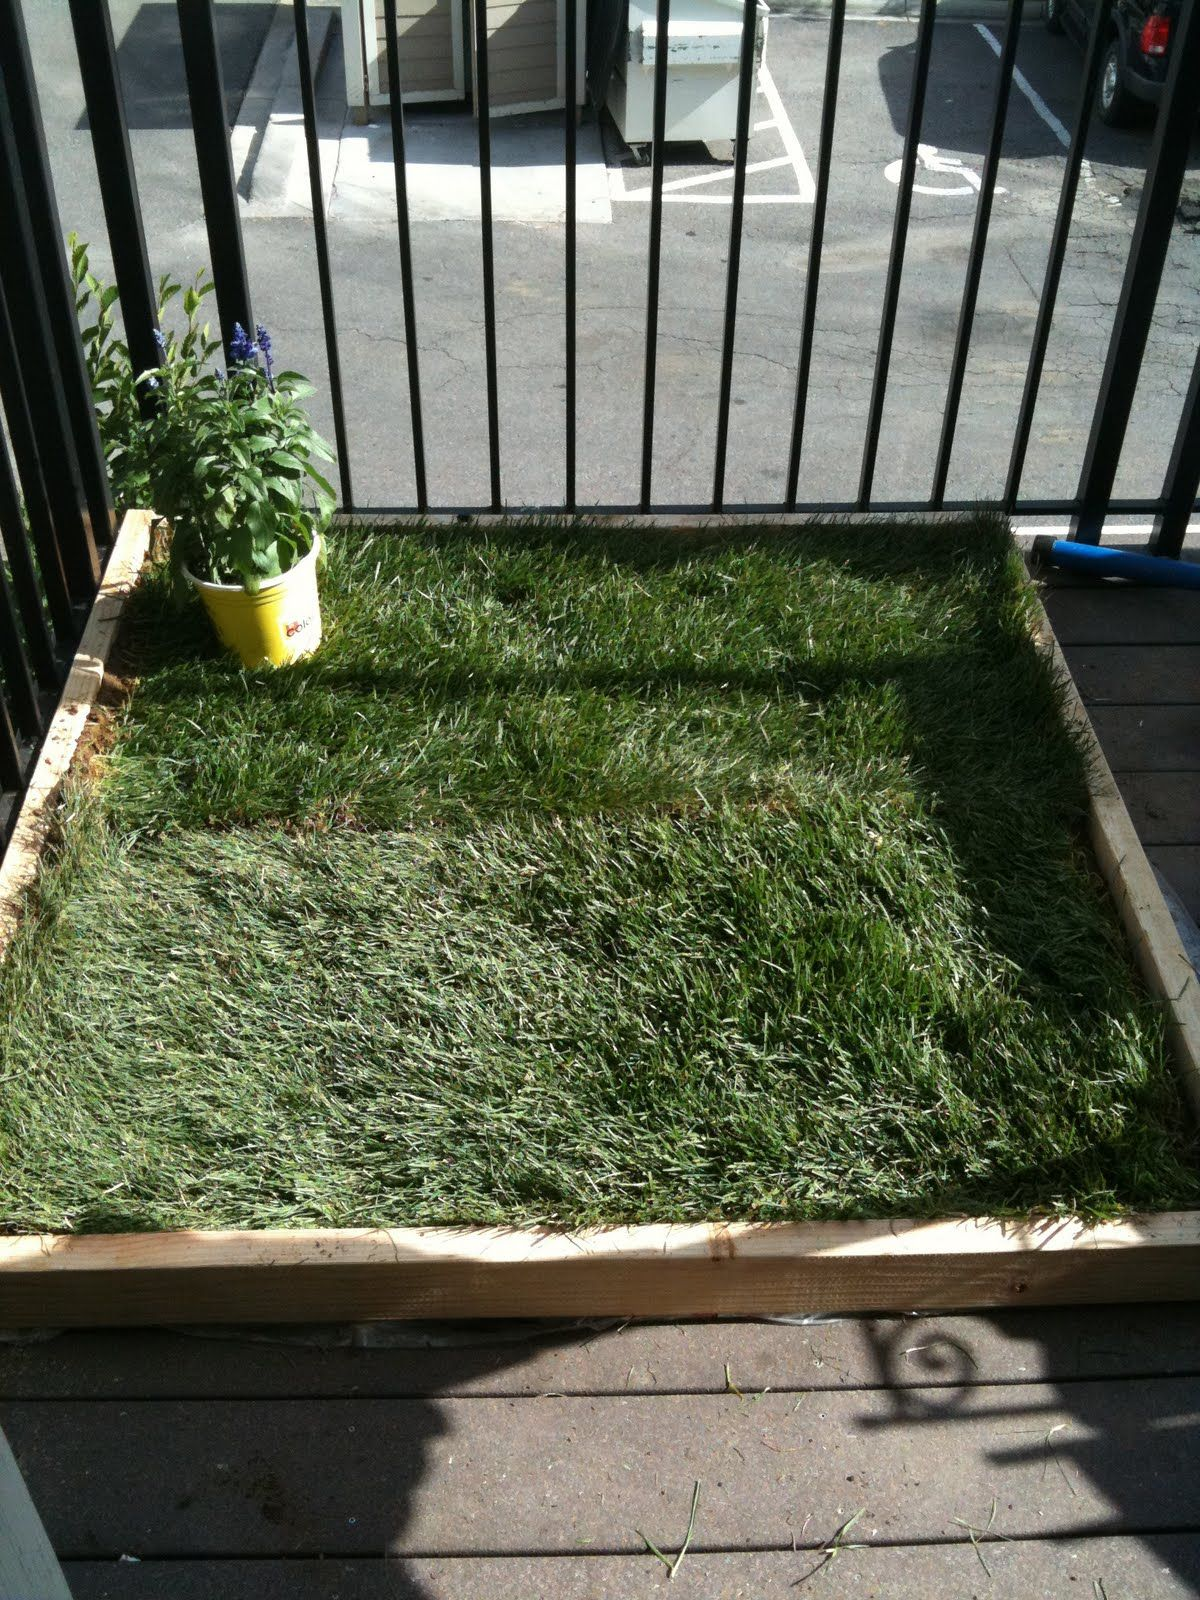 Litiere Pour Chien Sur Terrasse Diy Dog Potty Patch For Patio I Might Do This So I Don 39t